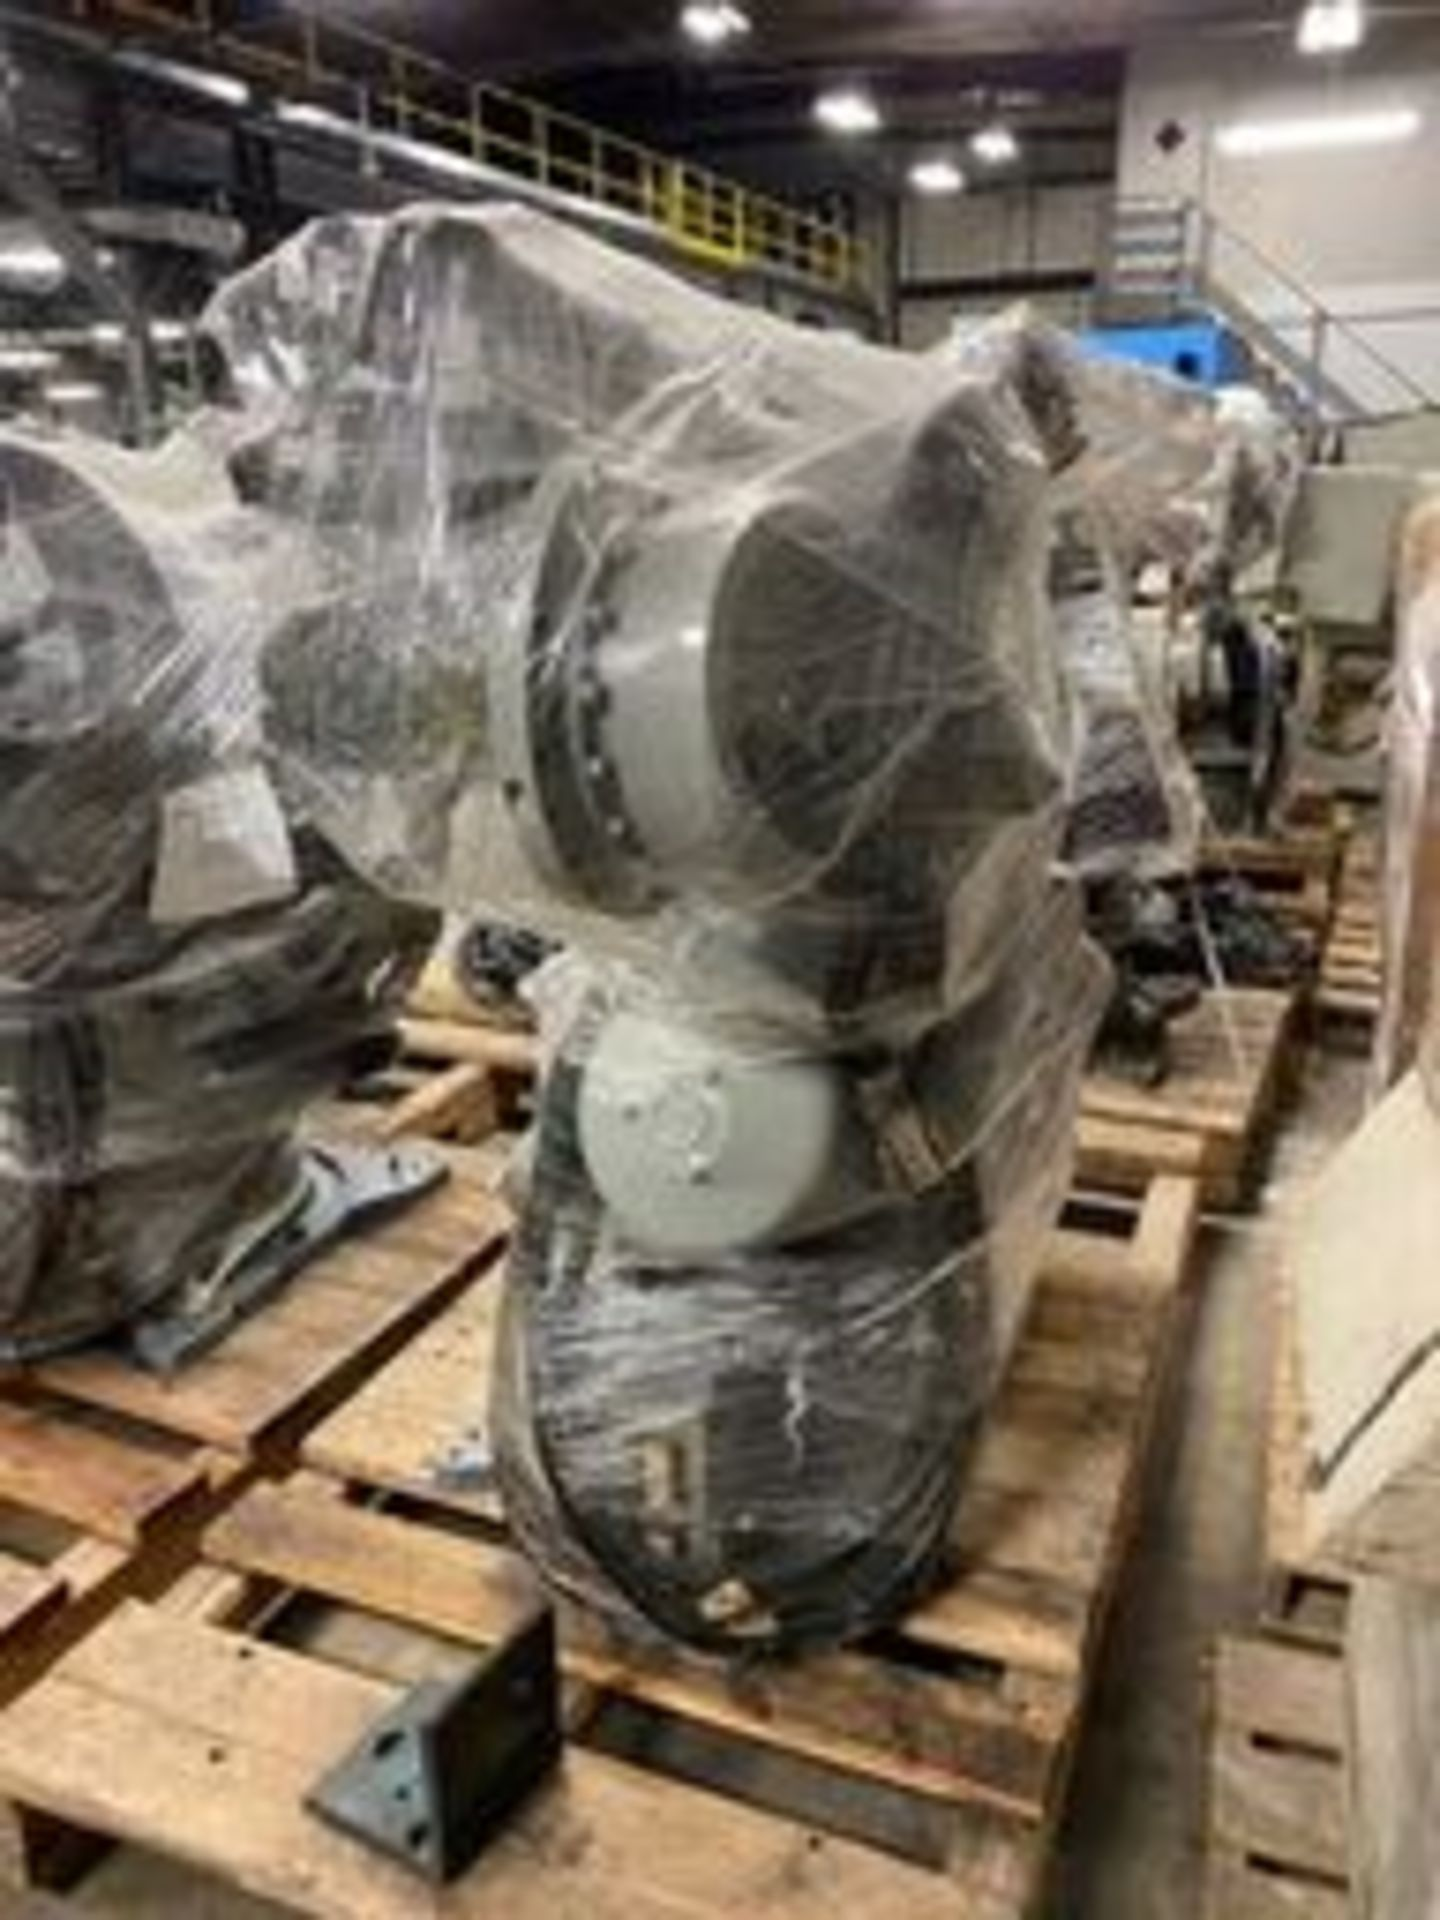 Motoman 6-Axis Robot, Model #ERCR-UP165-R816, DOM = 2002 - Image 2 of 5